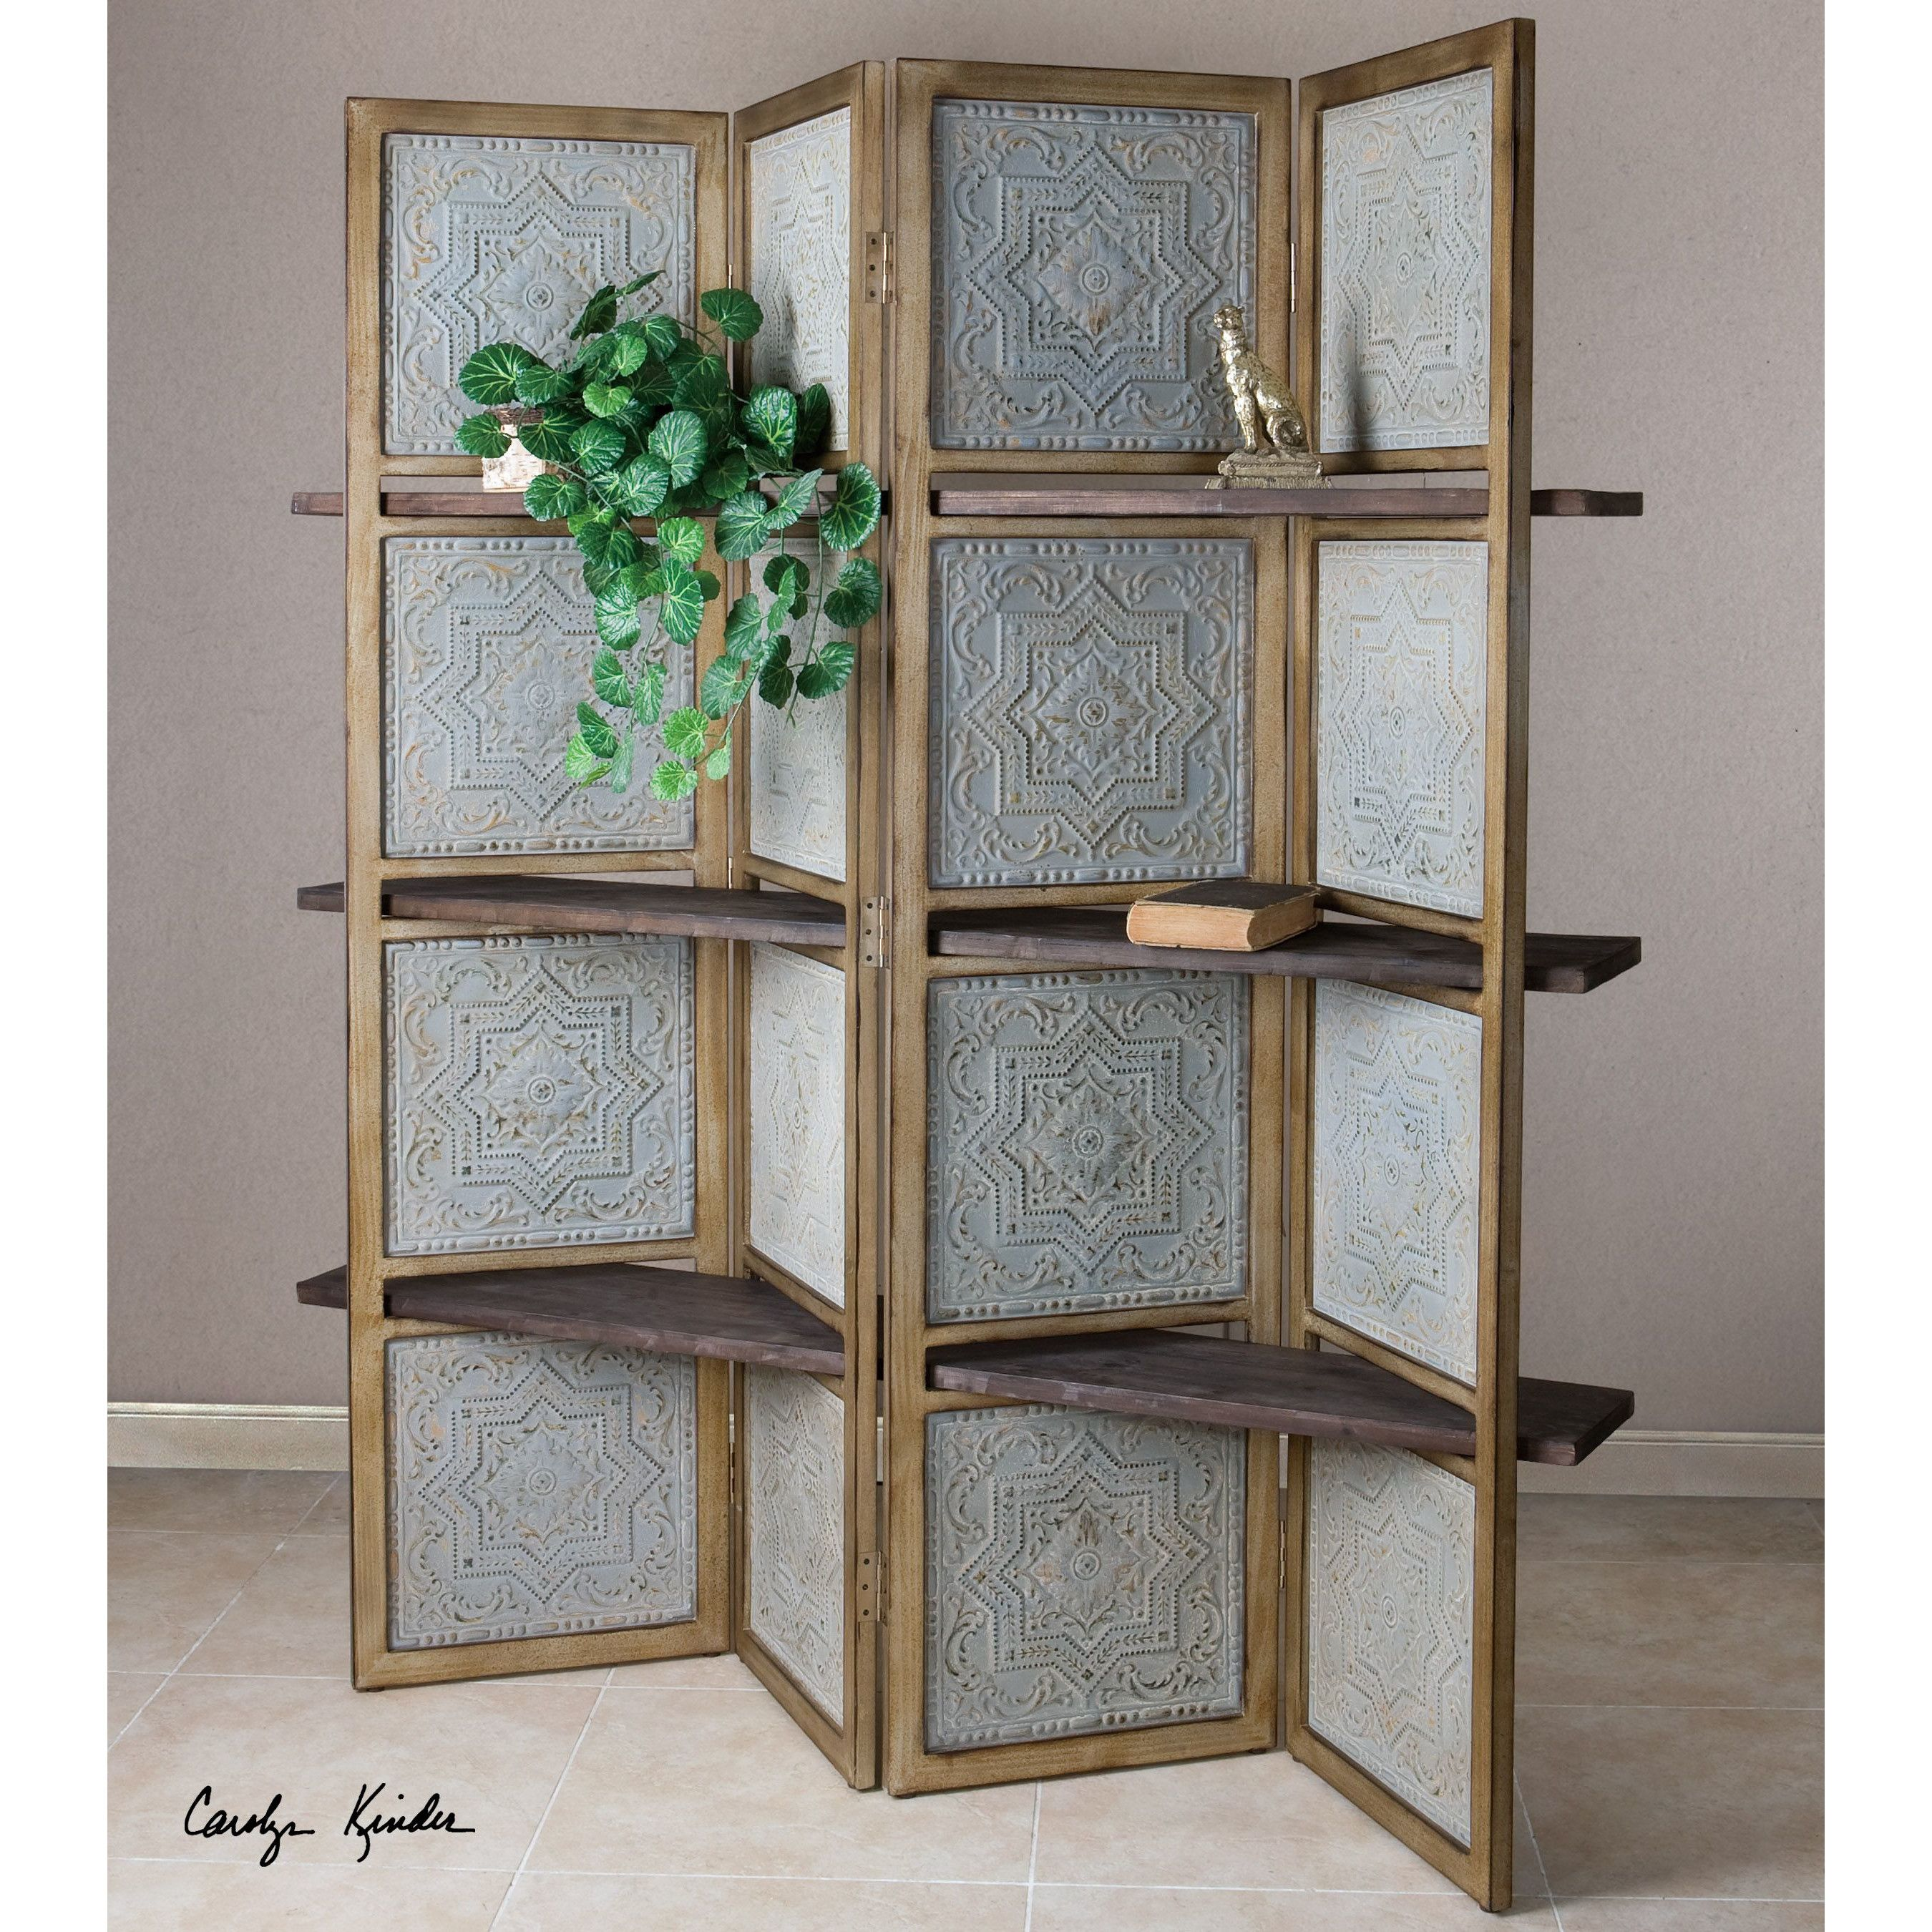 Uttermost anakaren 71 x 70 4 panel room divider home for Room divider art